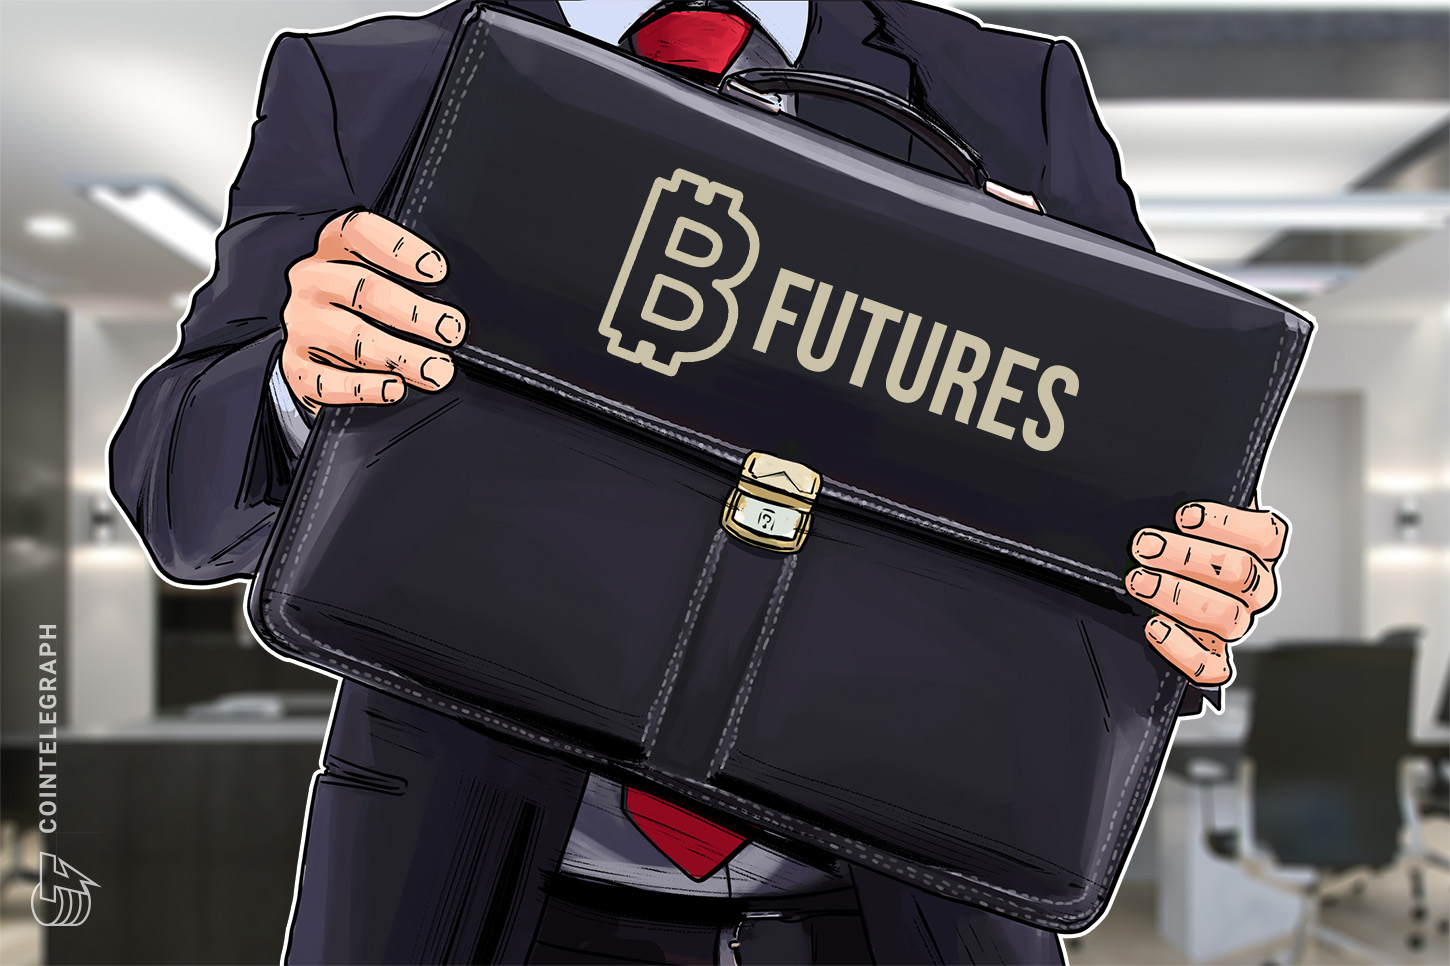 BlackRock SEC filings show company gained $369K from Bitcoin futures